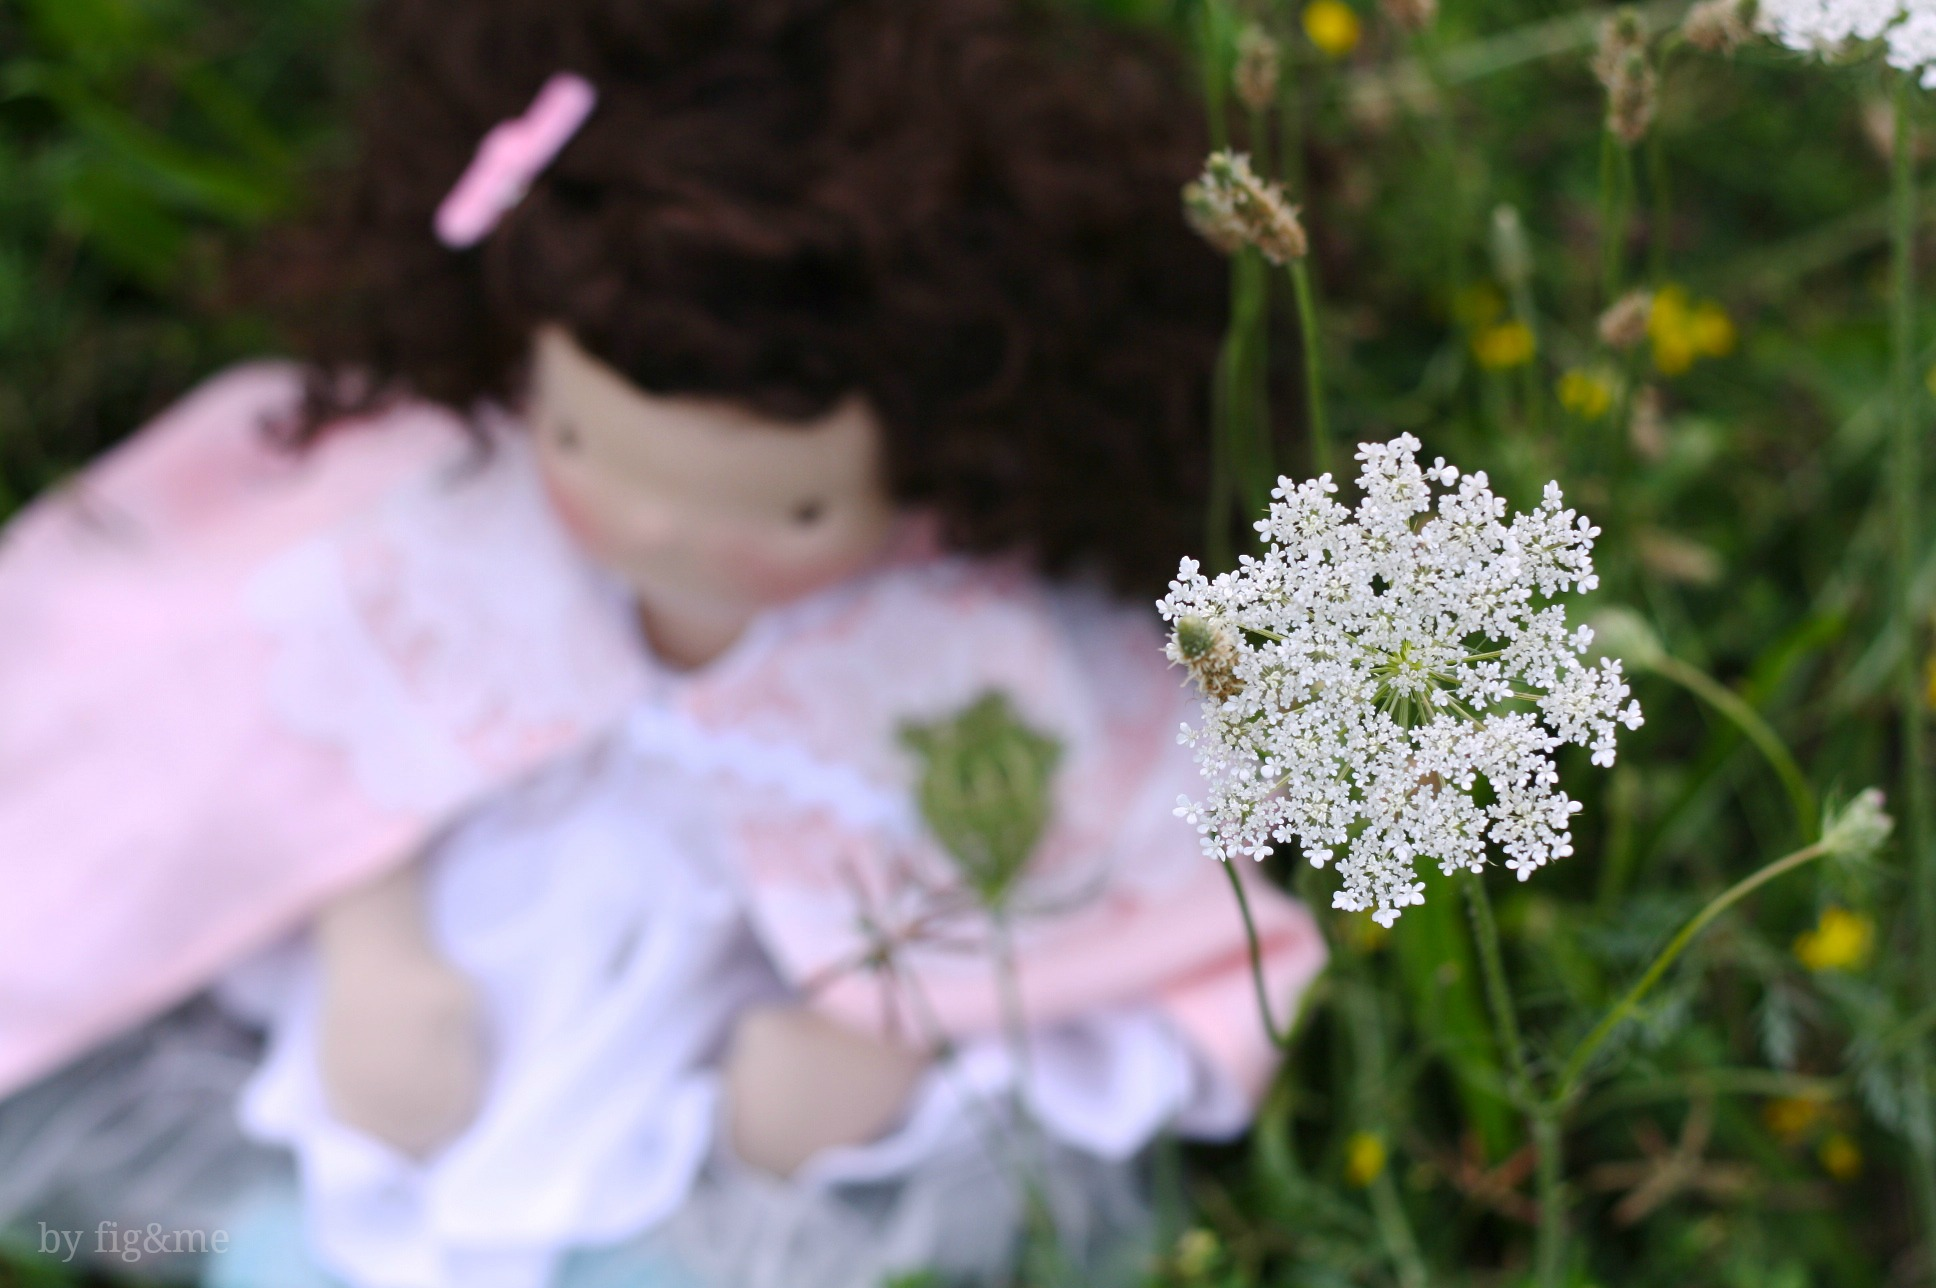 Queen Anne's Lace by Fig and me.